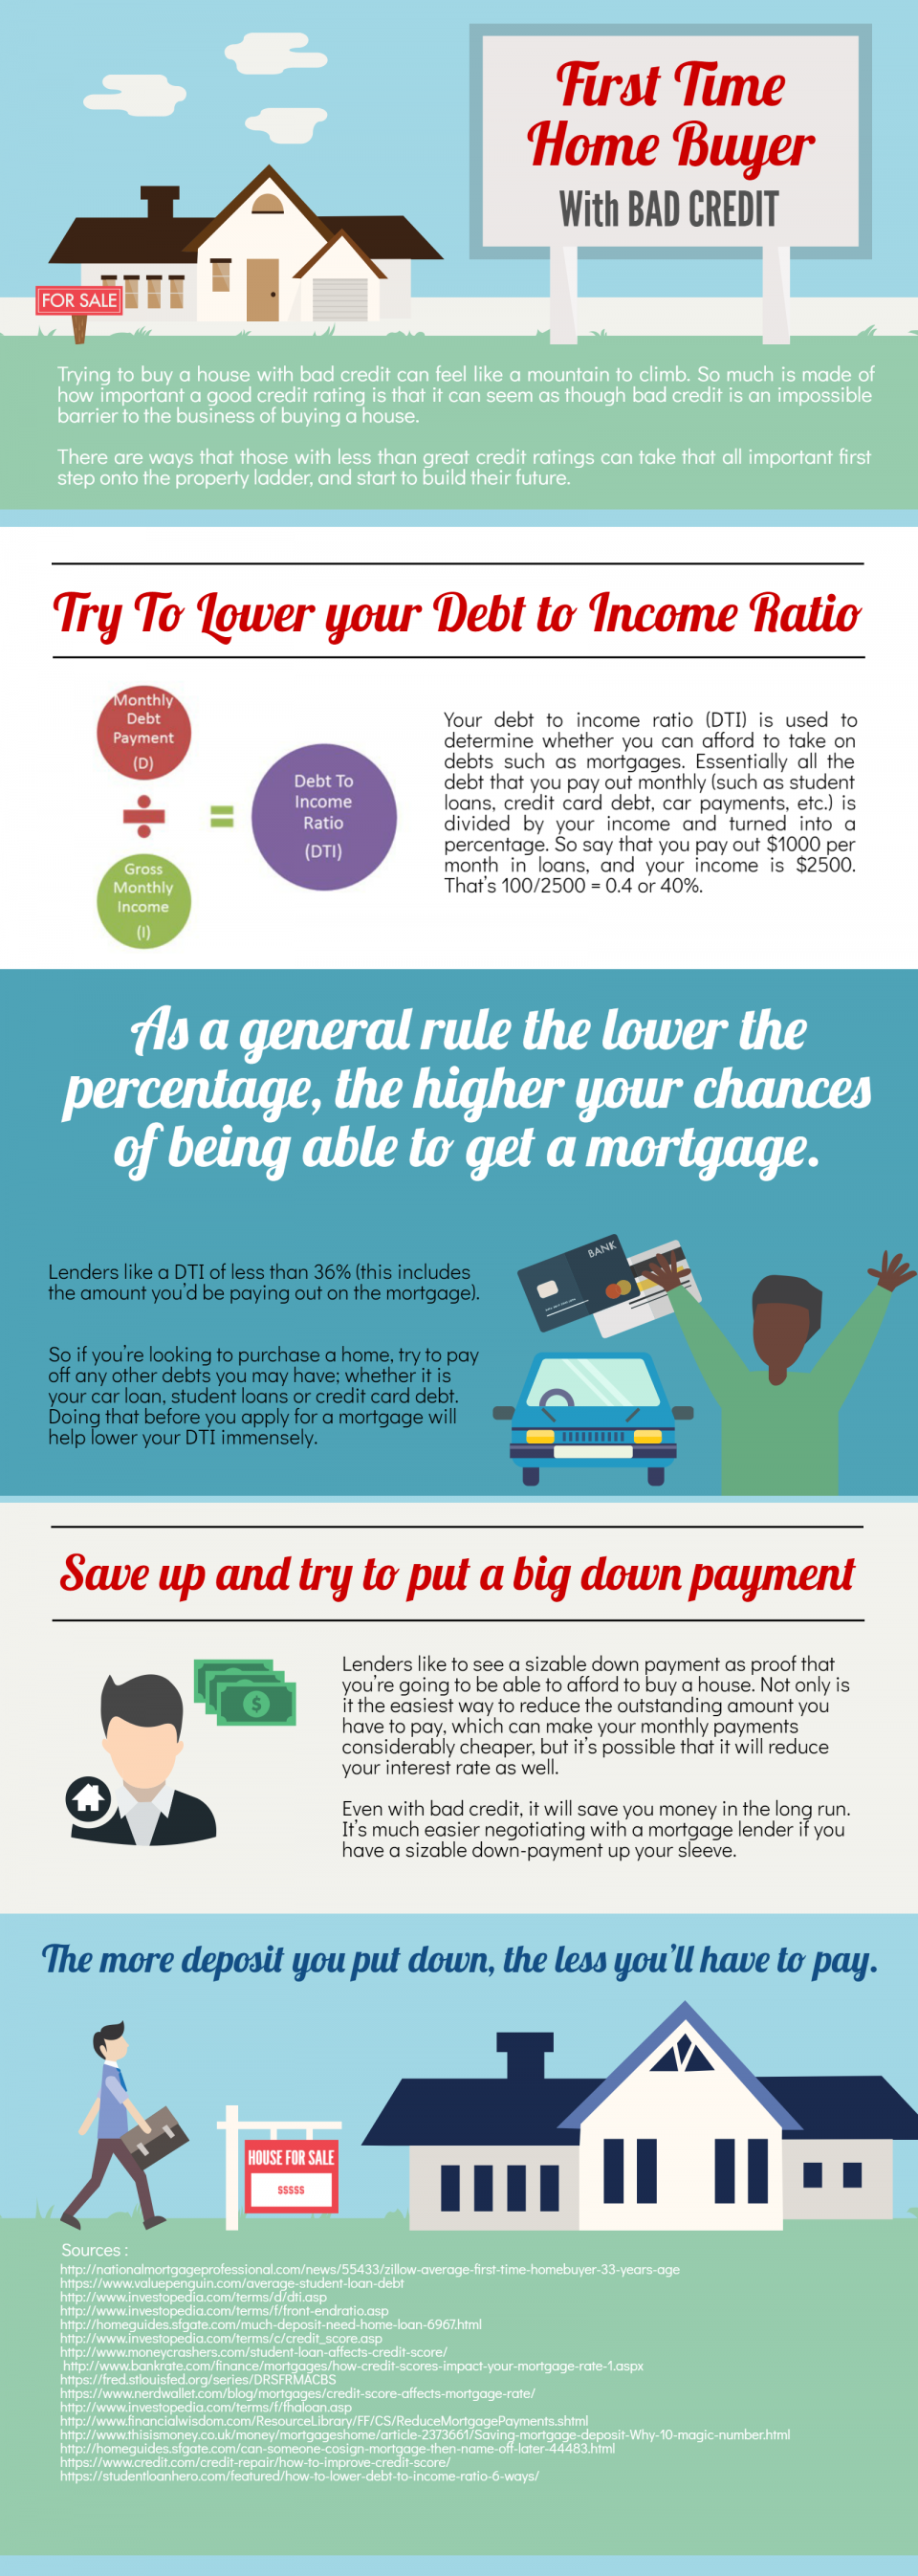 essential tips for the first time home buyer with bad credit